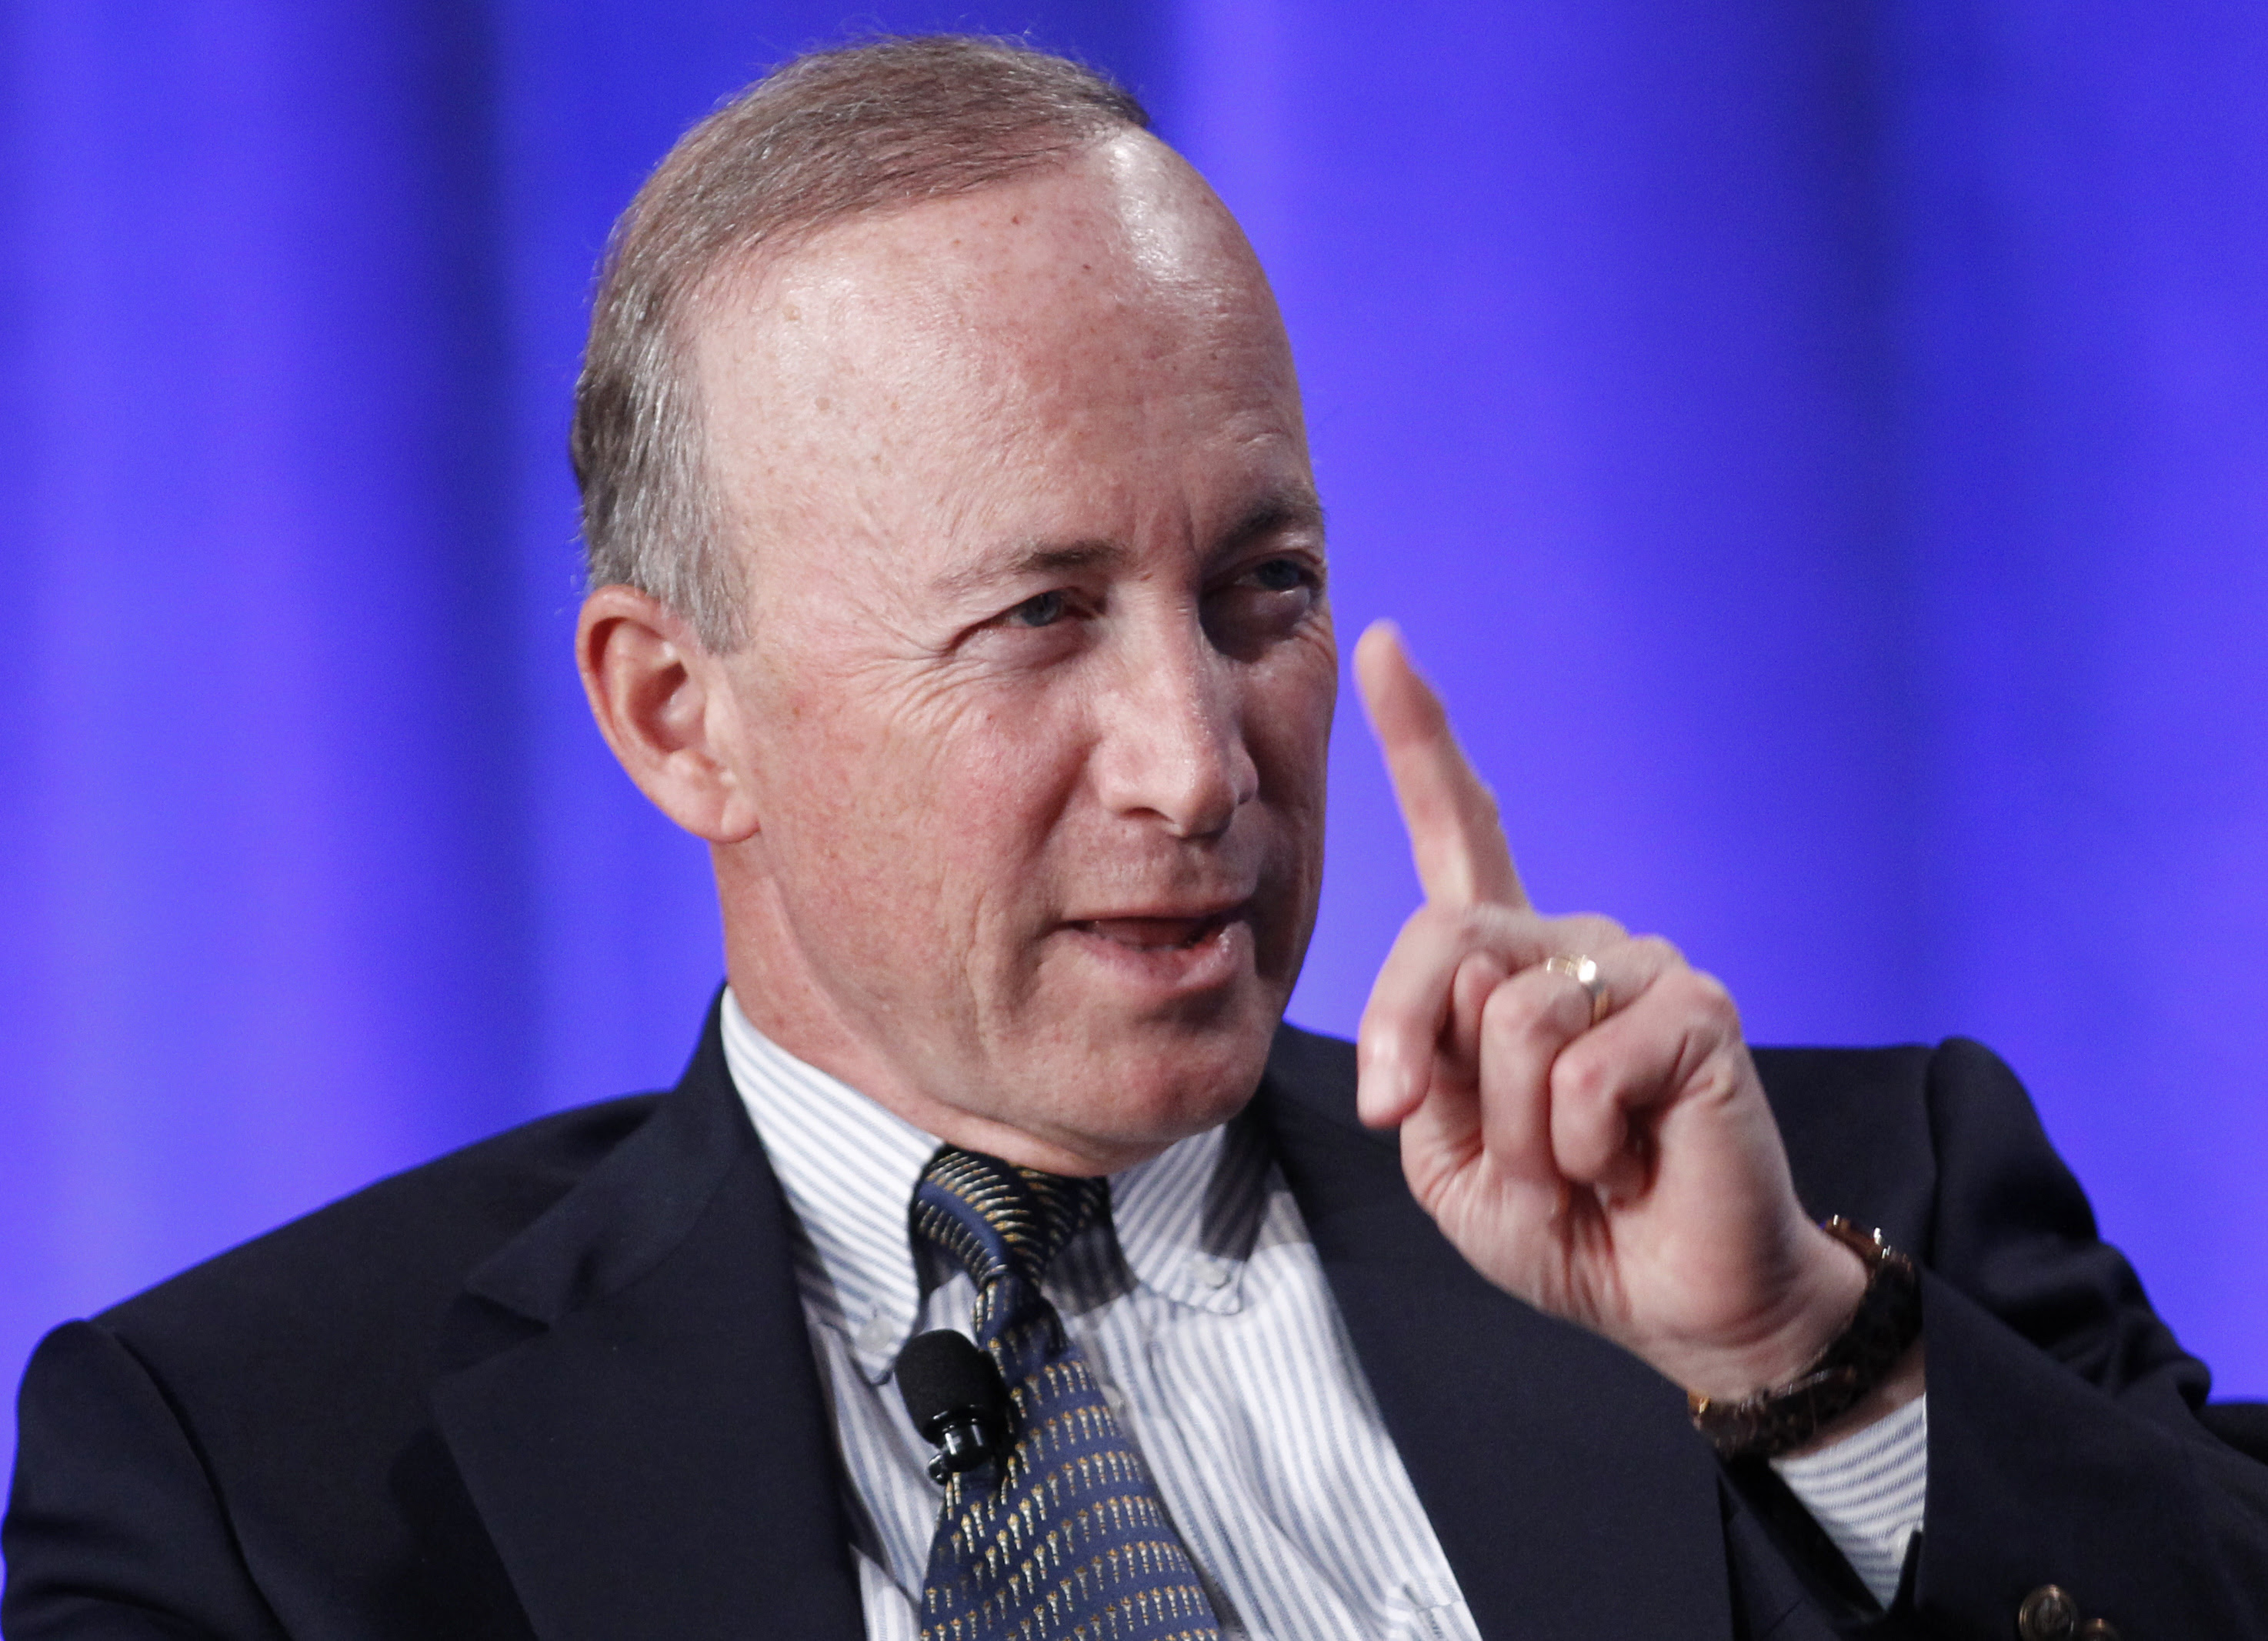 """State of Indiana Governor Mitch Daniels takes part in a panel discussion titled """"Why Wait for Washington? How States Can Create Jobs and Economic Growth"""" at the Milken Institute Global Conference in Beverly Hills, California May 1, 2012. REUTERS/Danny Moloshok"""